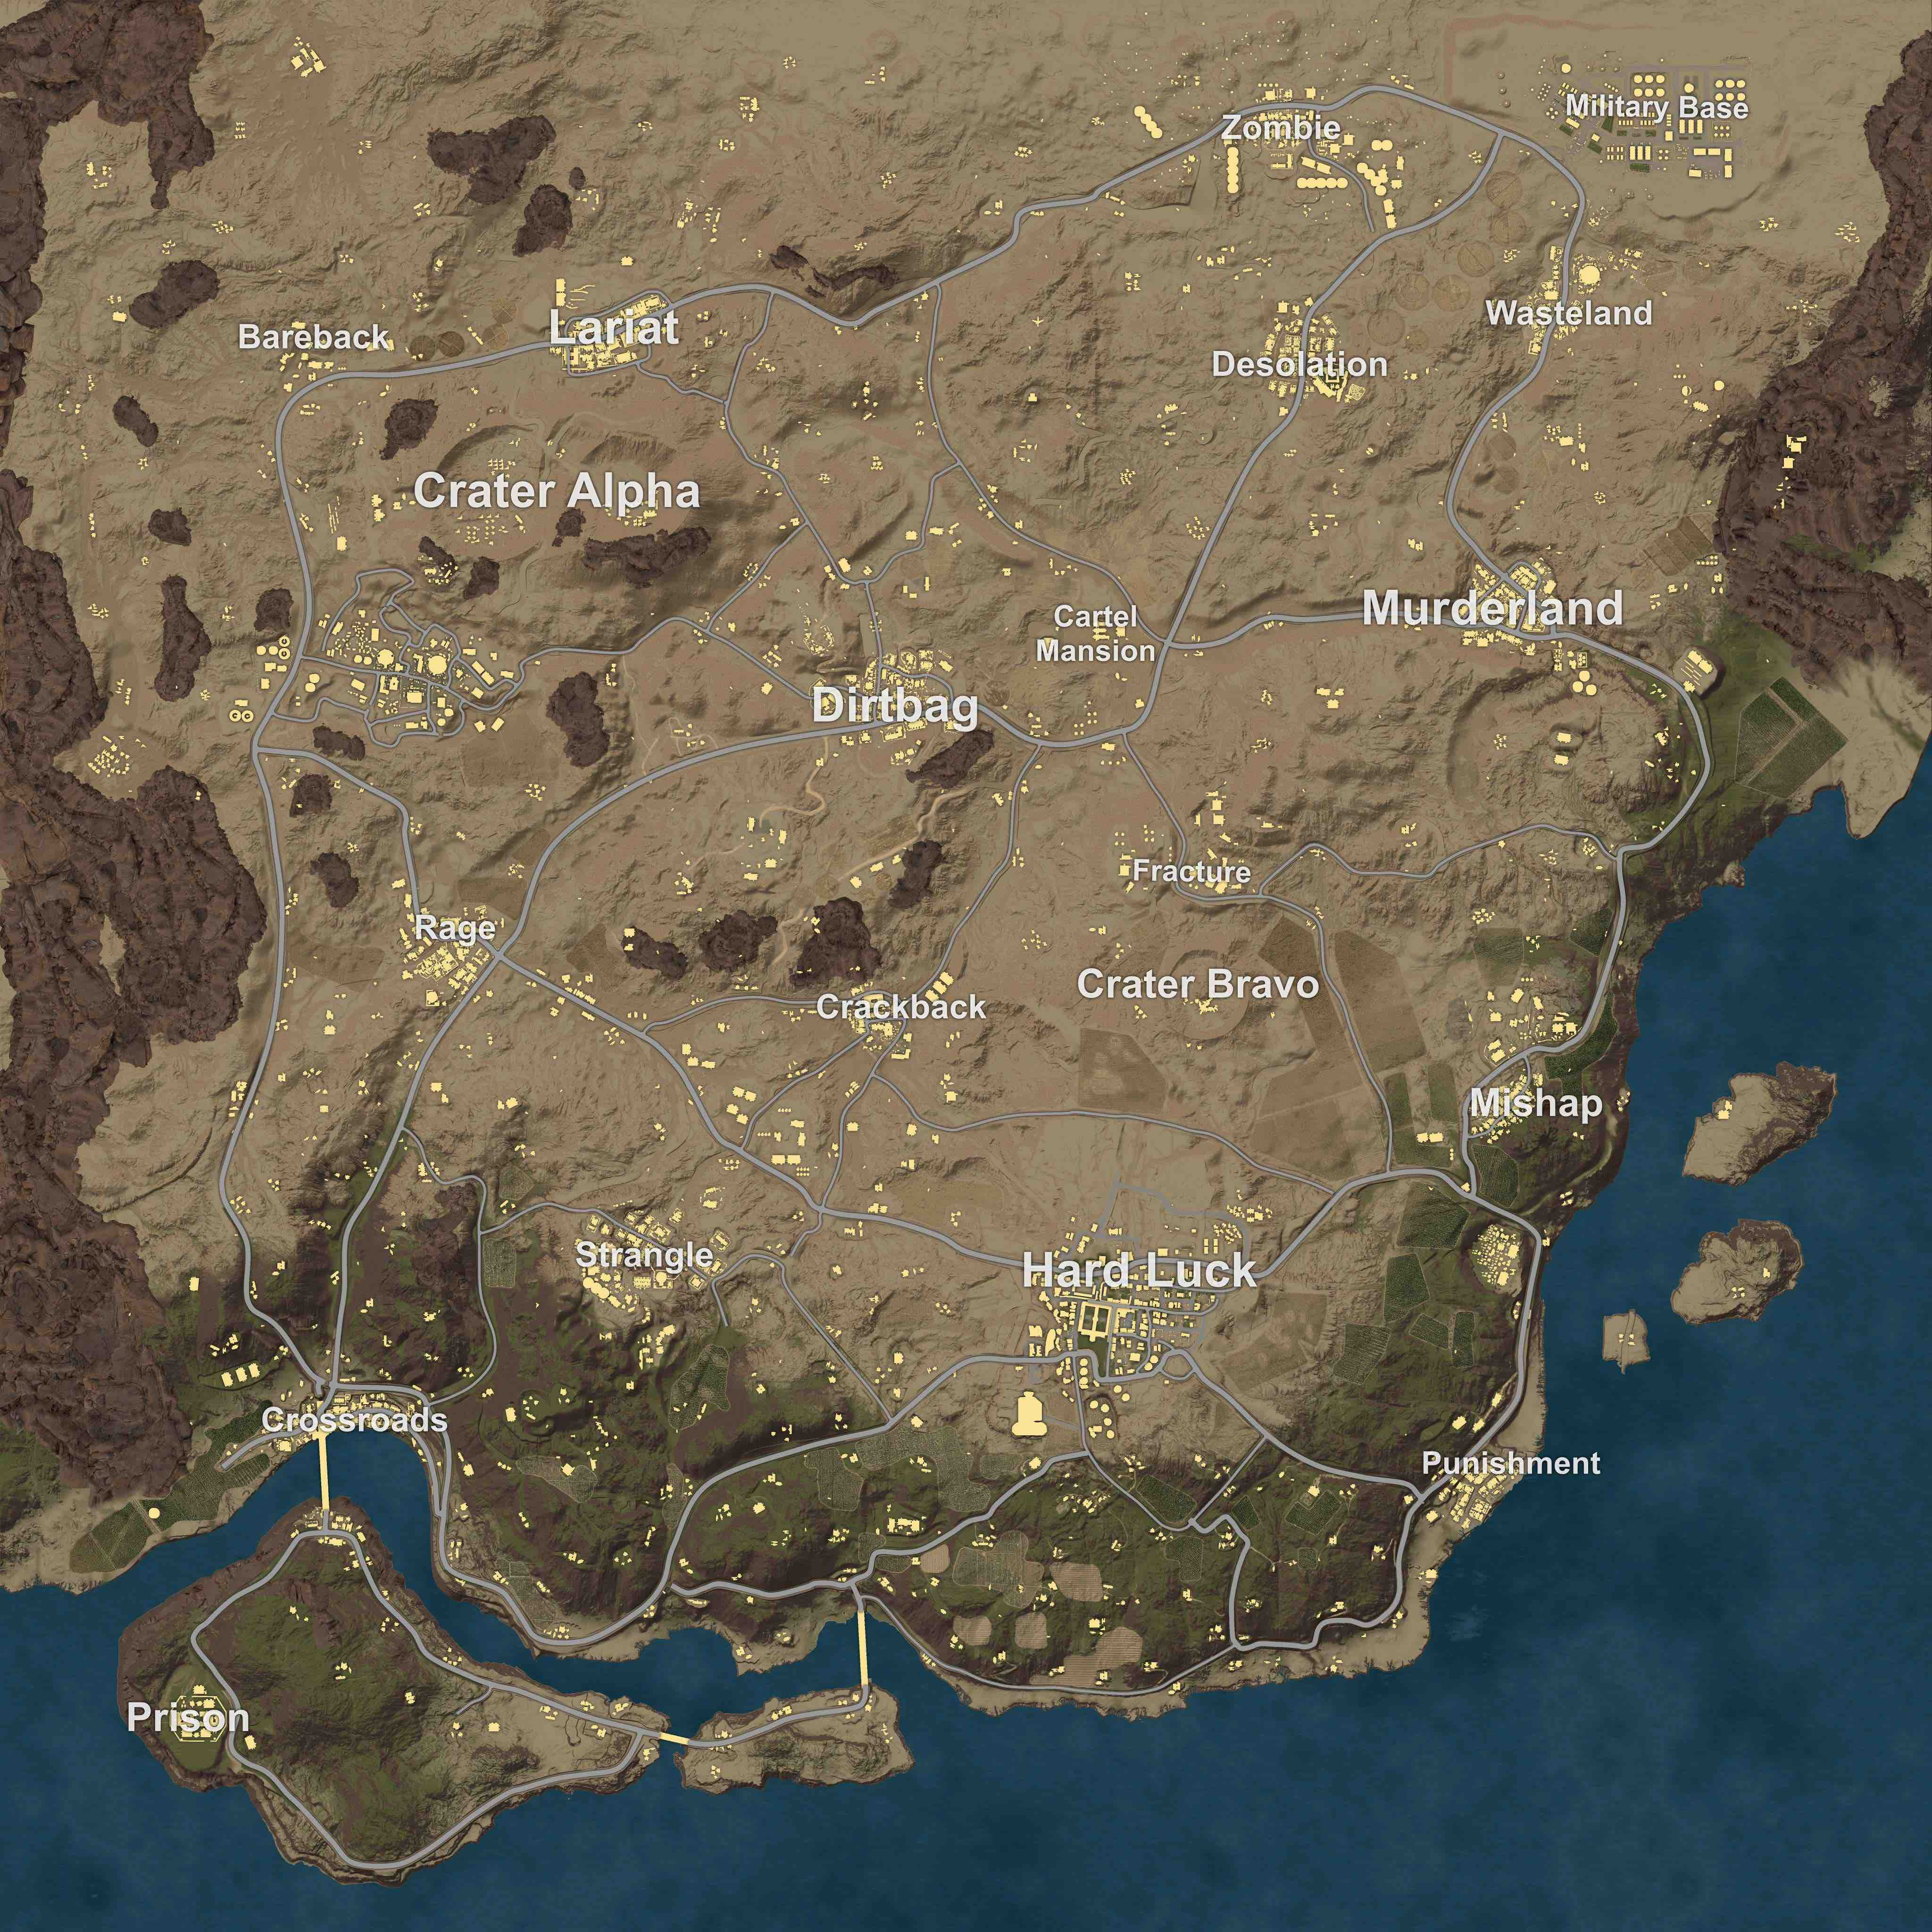 PUBG new map patch 1.00